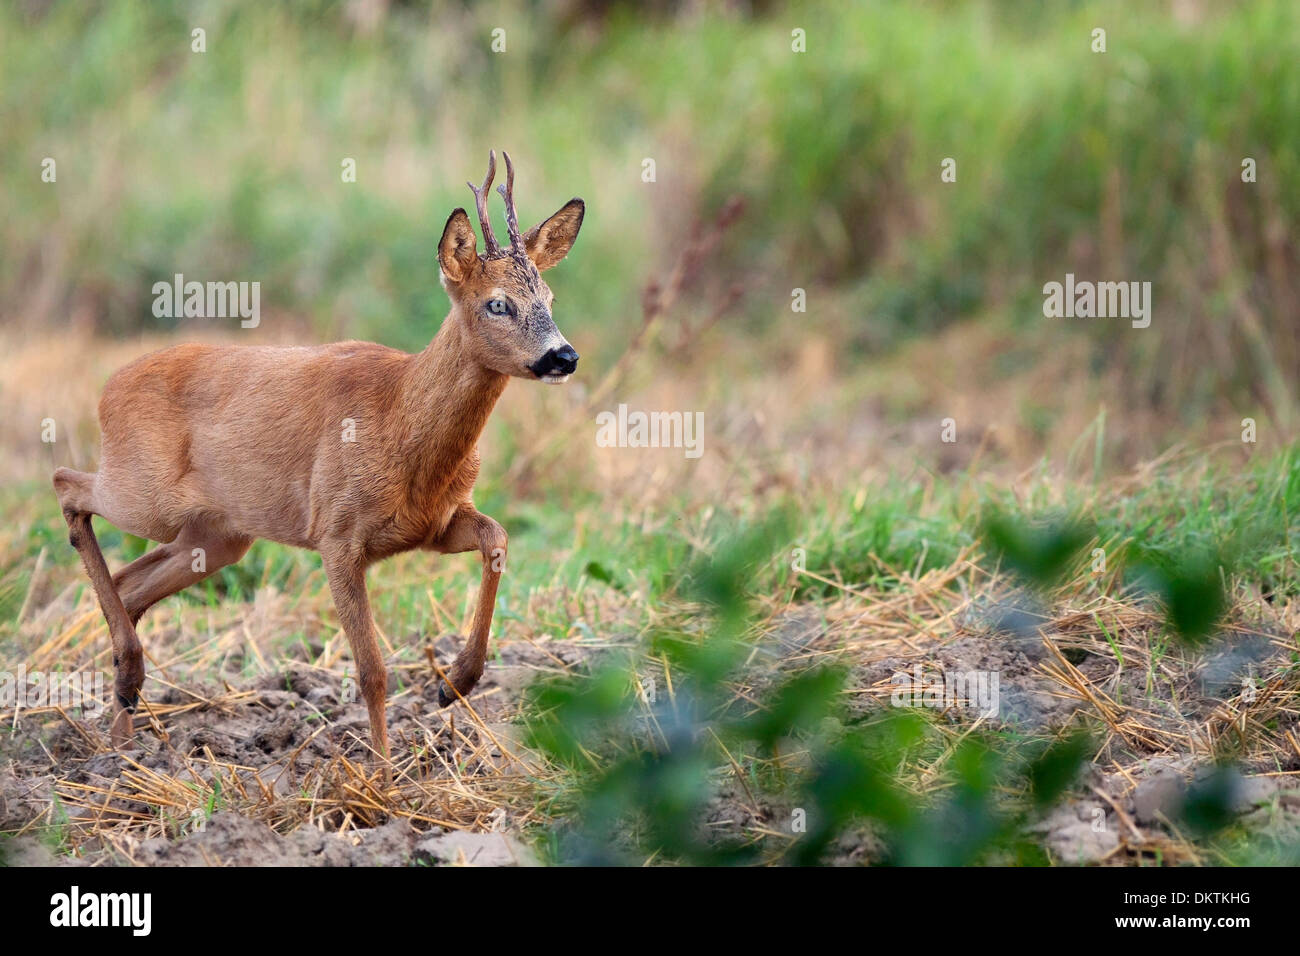 Walking roebuck in the wild, in a clearing. - Stock Image